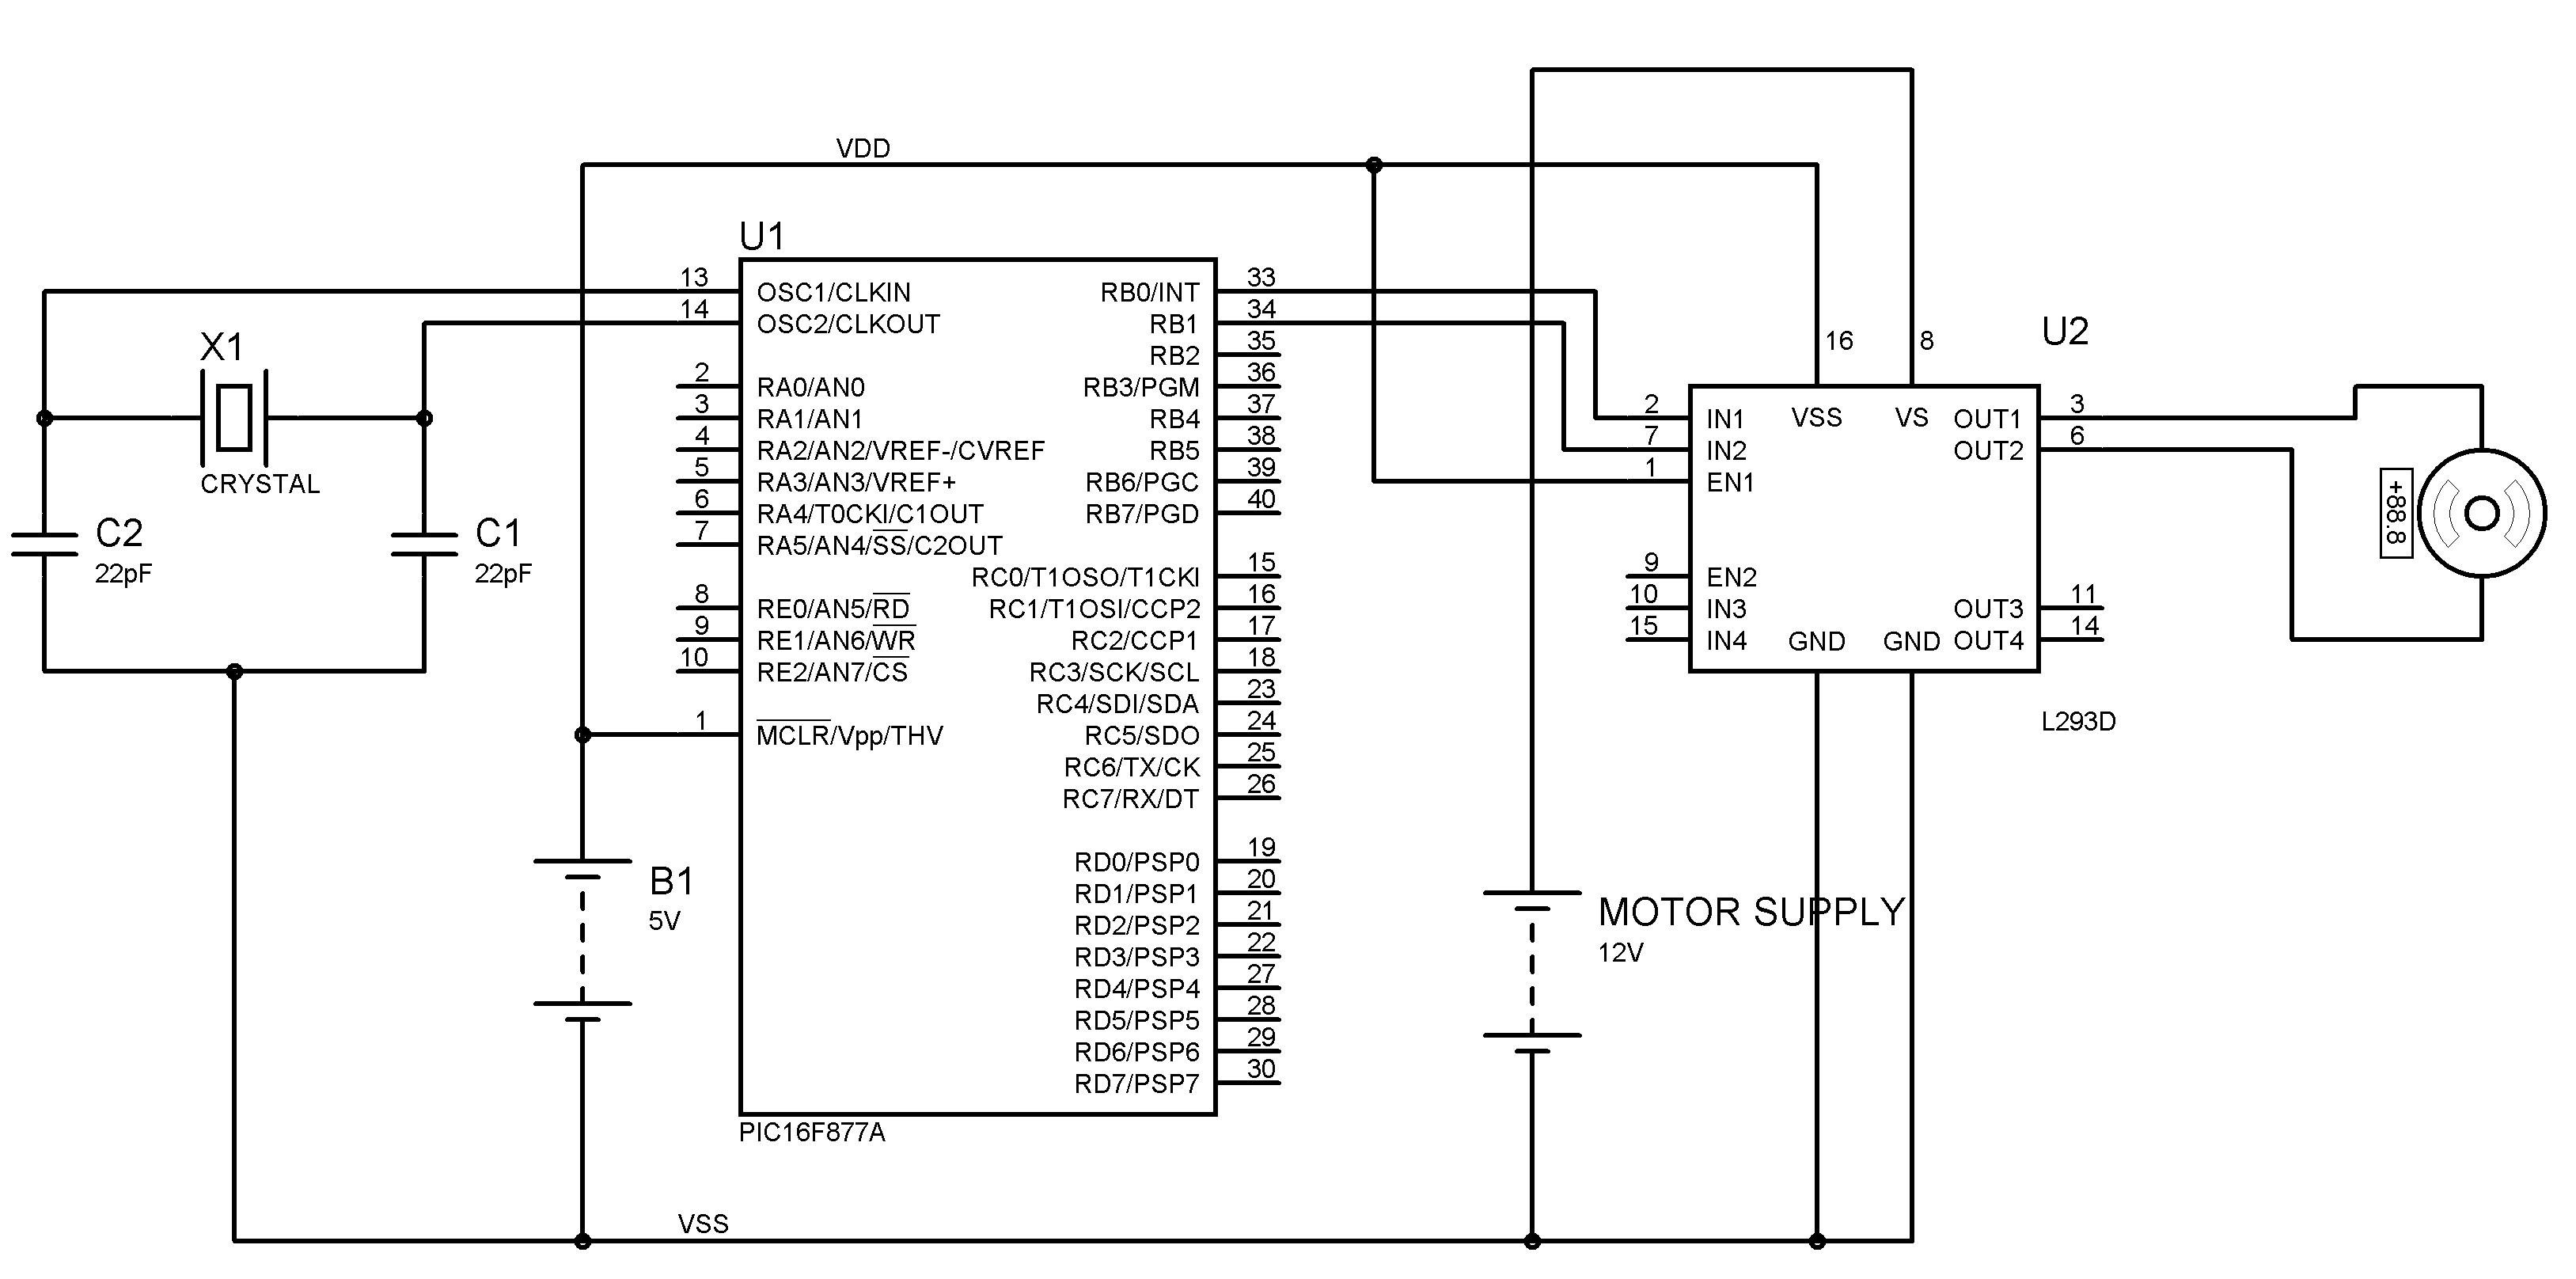 Cutler Hammer Motor Starter Wiring Diagram Wiring Diagram for ...